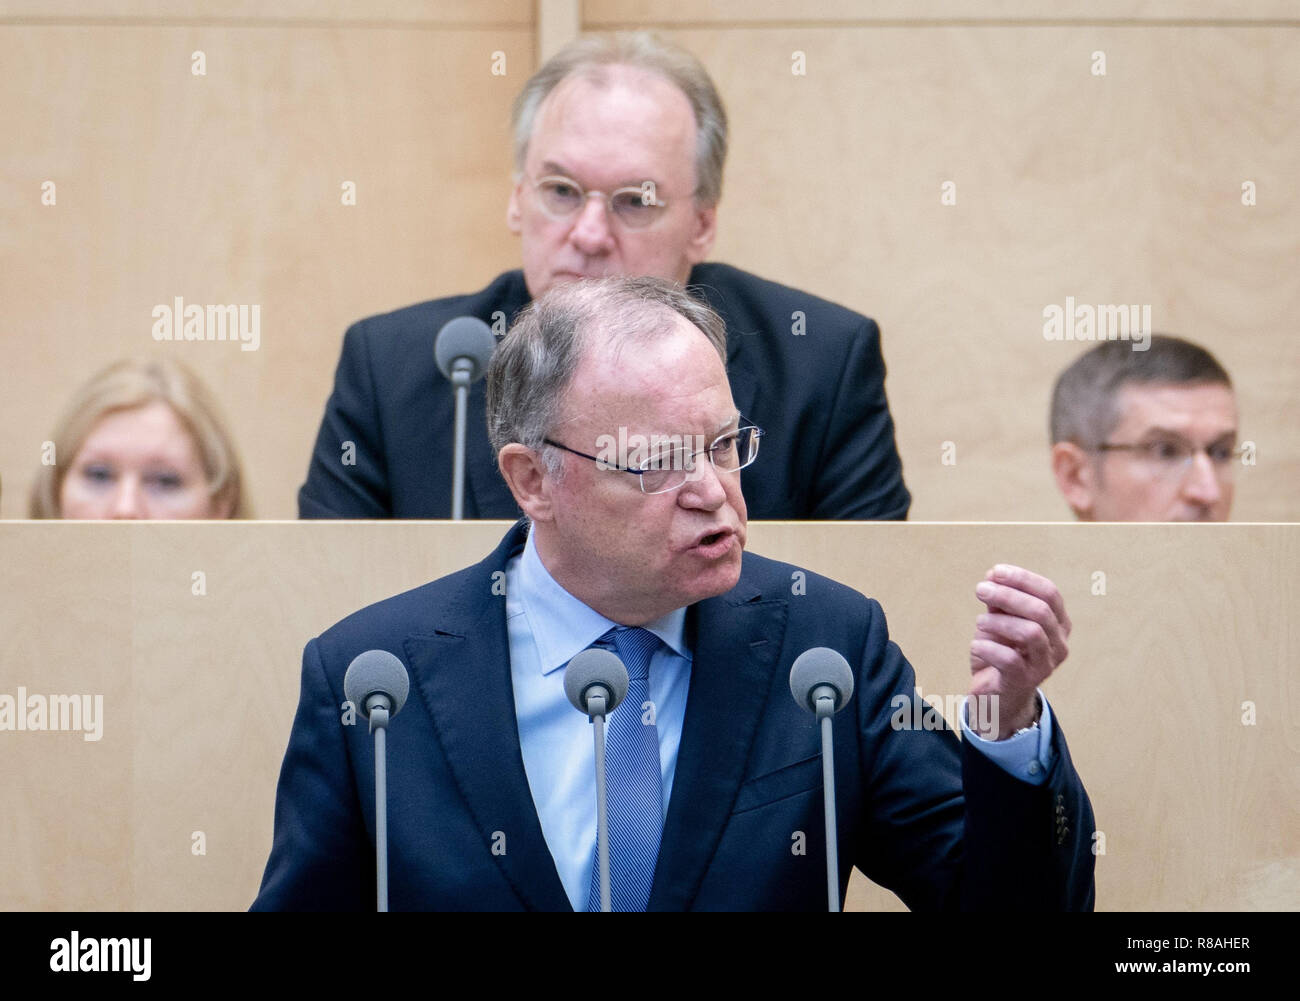 Berlin, Germany. 14th Dec, 2018. Stephan Weil (SPD), Prime Minister of Lower Saxony, speaks at the session of the Bundesrat. In the last session of the year, the regional chamber finally deals with several laws of the grand coalition, including tightening the rent brake, more further training, higher nursing care contributions in 2019, postponement of the ban on anaesthetised piglet castration. Credit: Kay Nietfeld/dpa/Alamy Live News - Stock Image